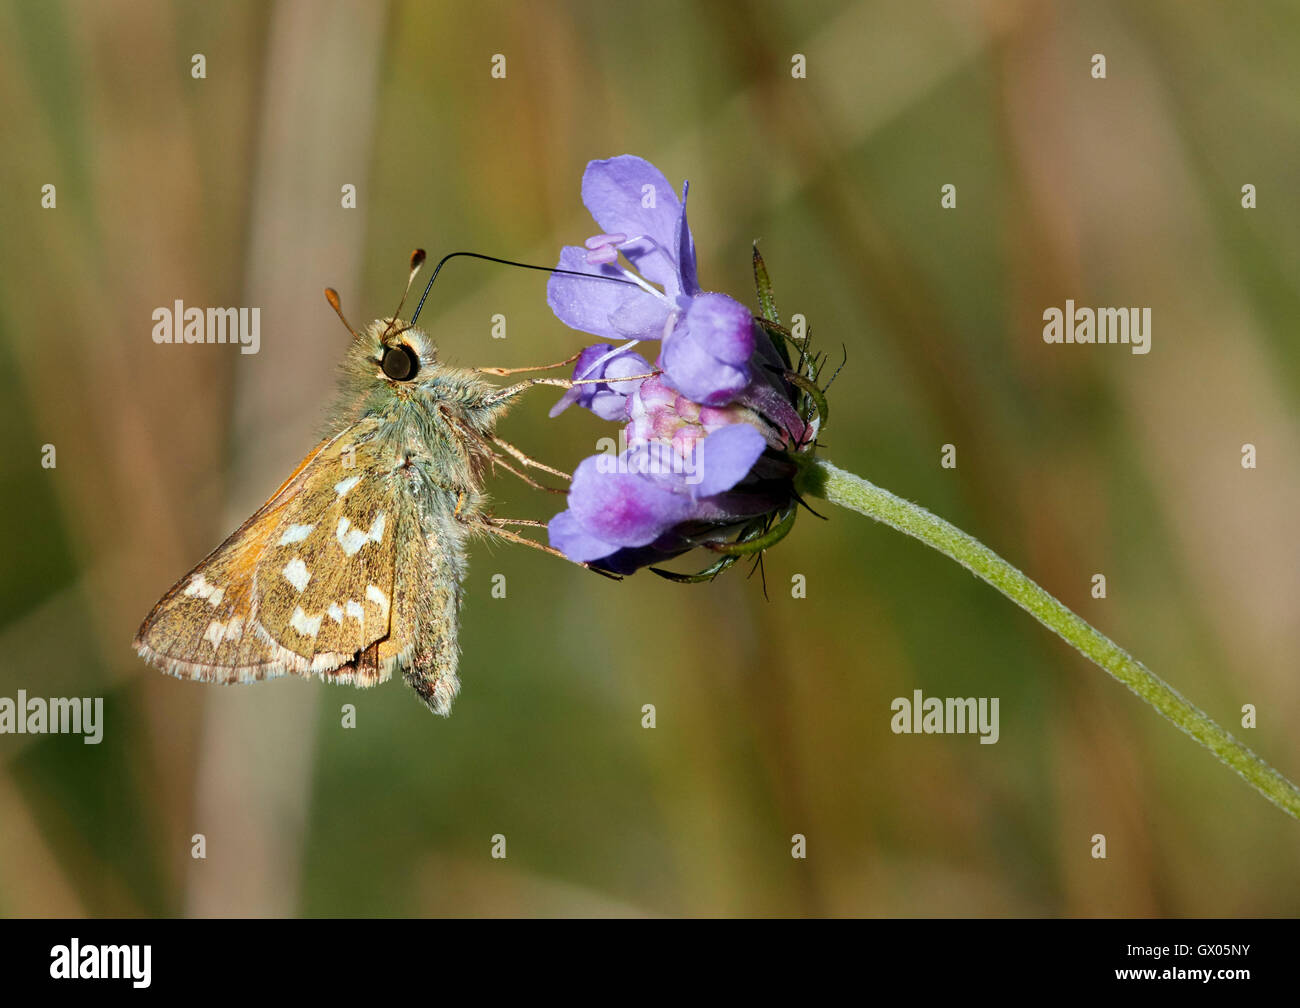 Silver-spotted Skipper nectaring on scabious flower. Denbies Hillside, Ranmore Common, Surrey, England. - Stock Image